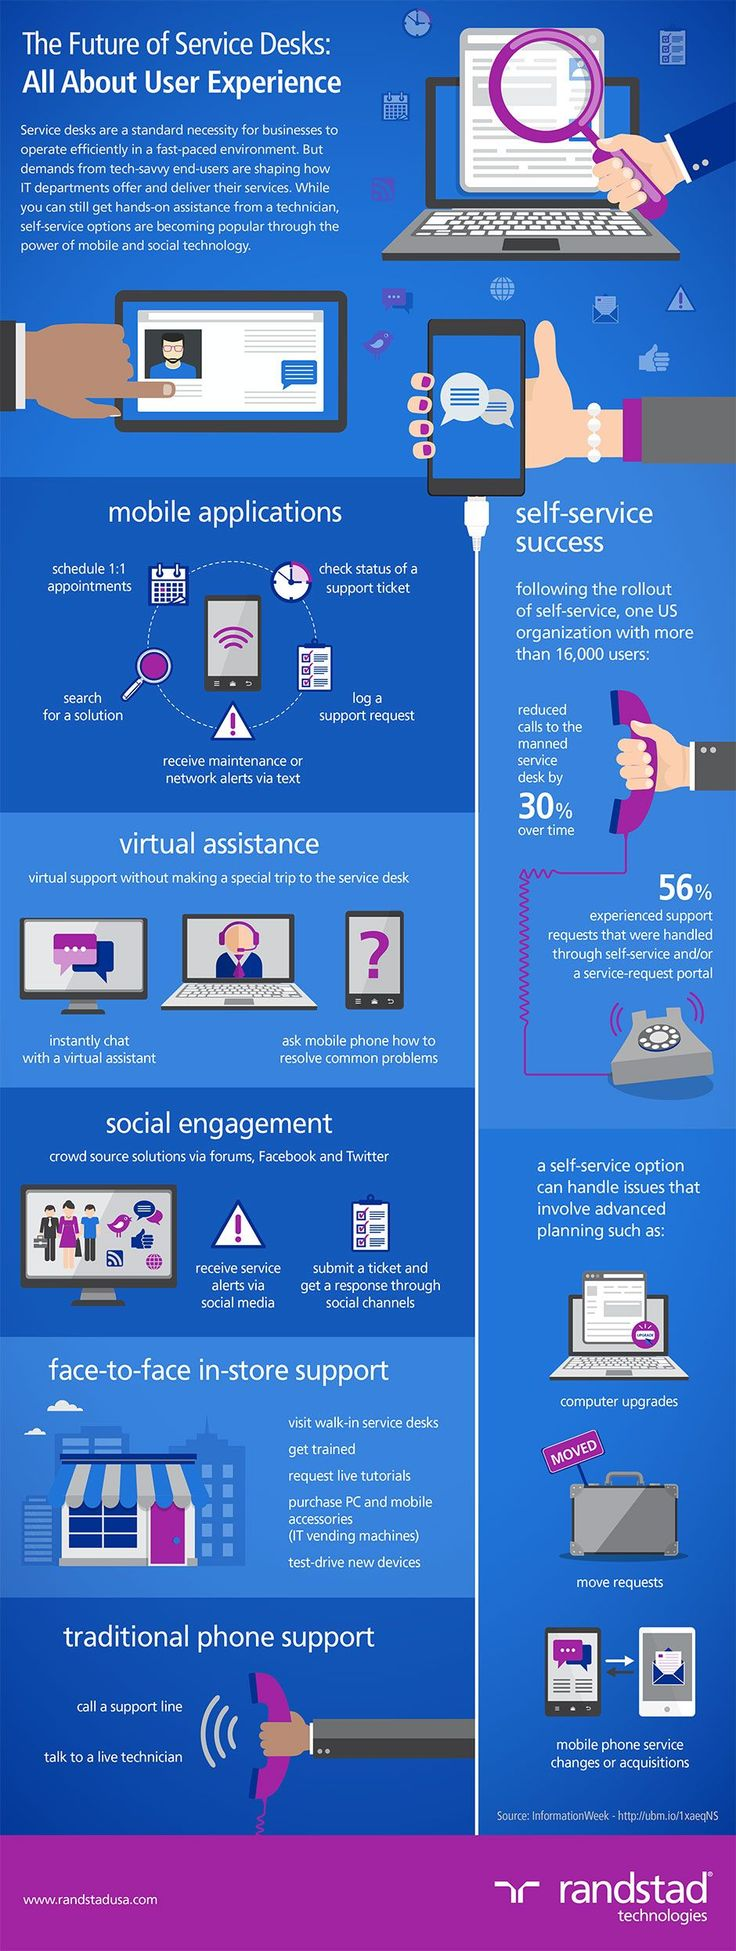 The Future of Service Desks is All About User Experience #infographic #CustomerService #Business